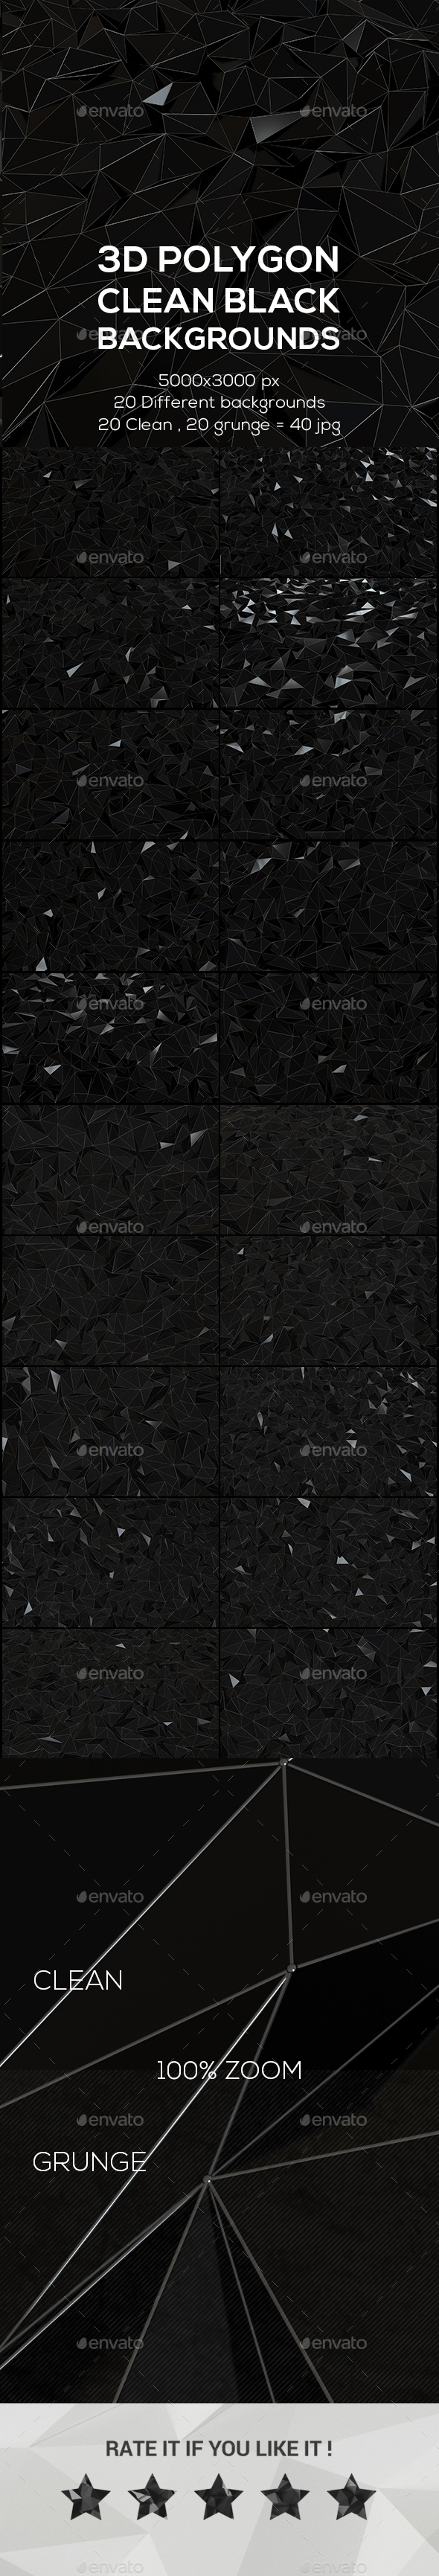 3D Polygon Clean Black Backgrounds - Abstract Backgrounds